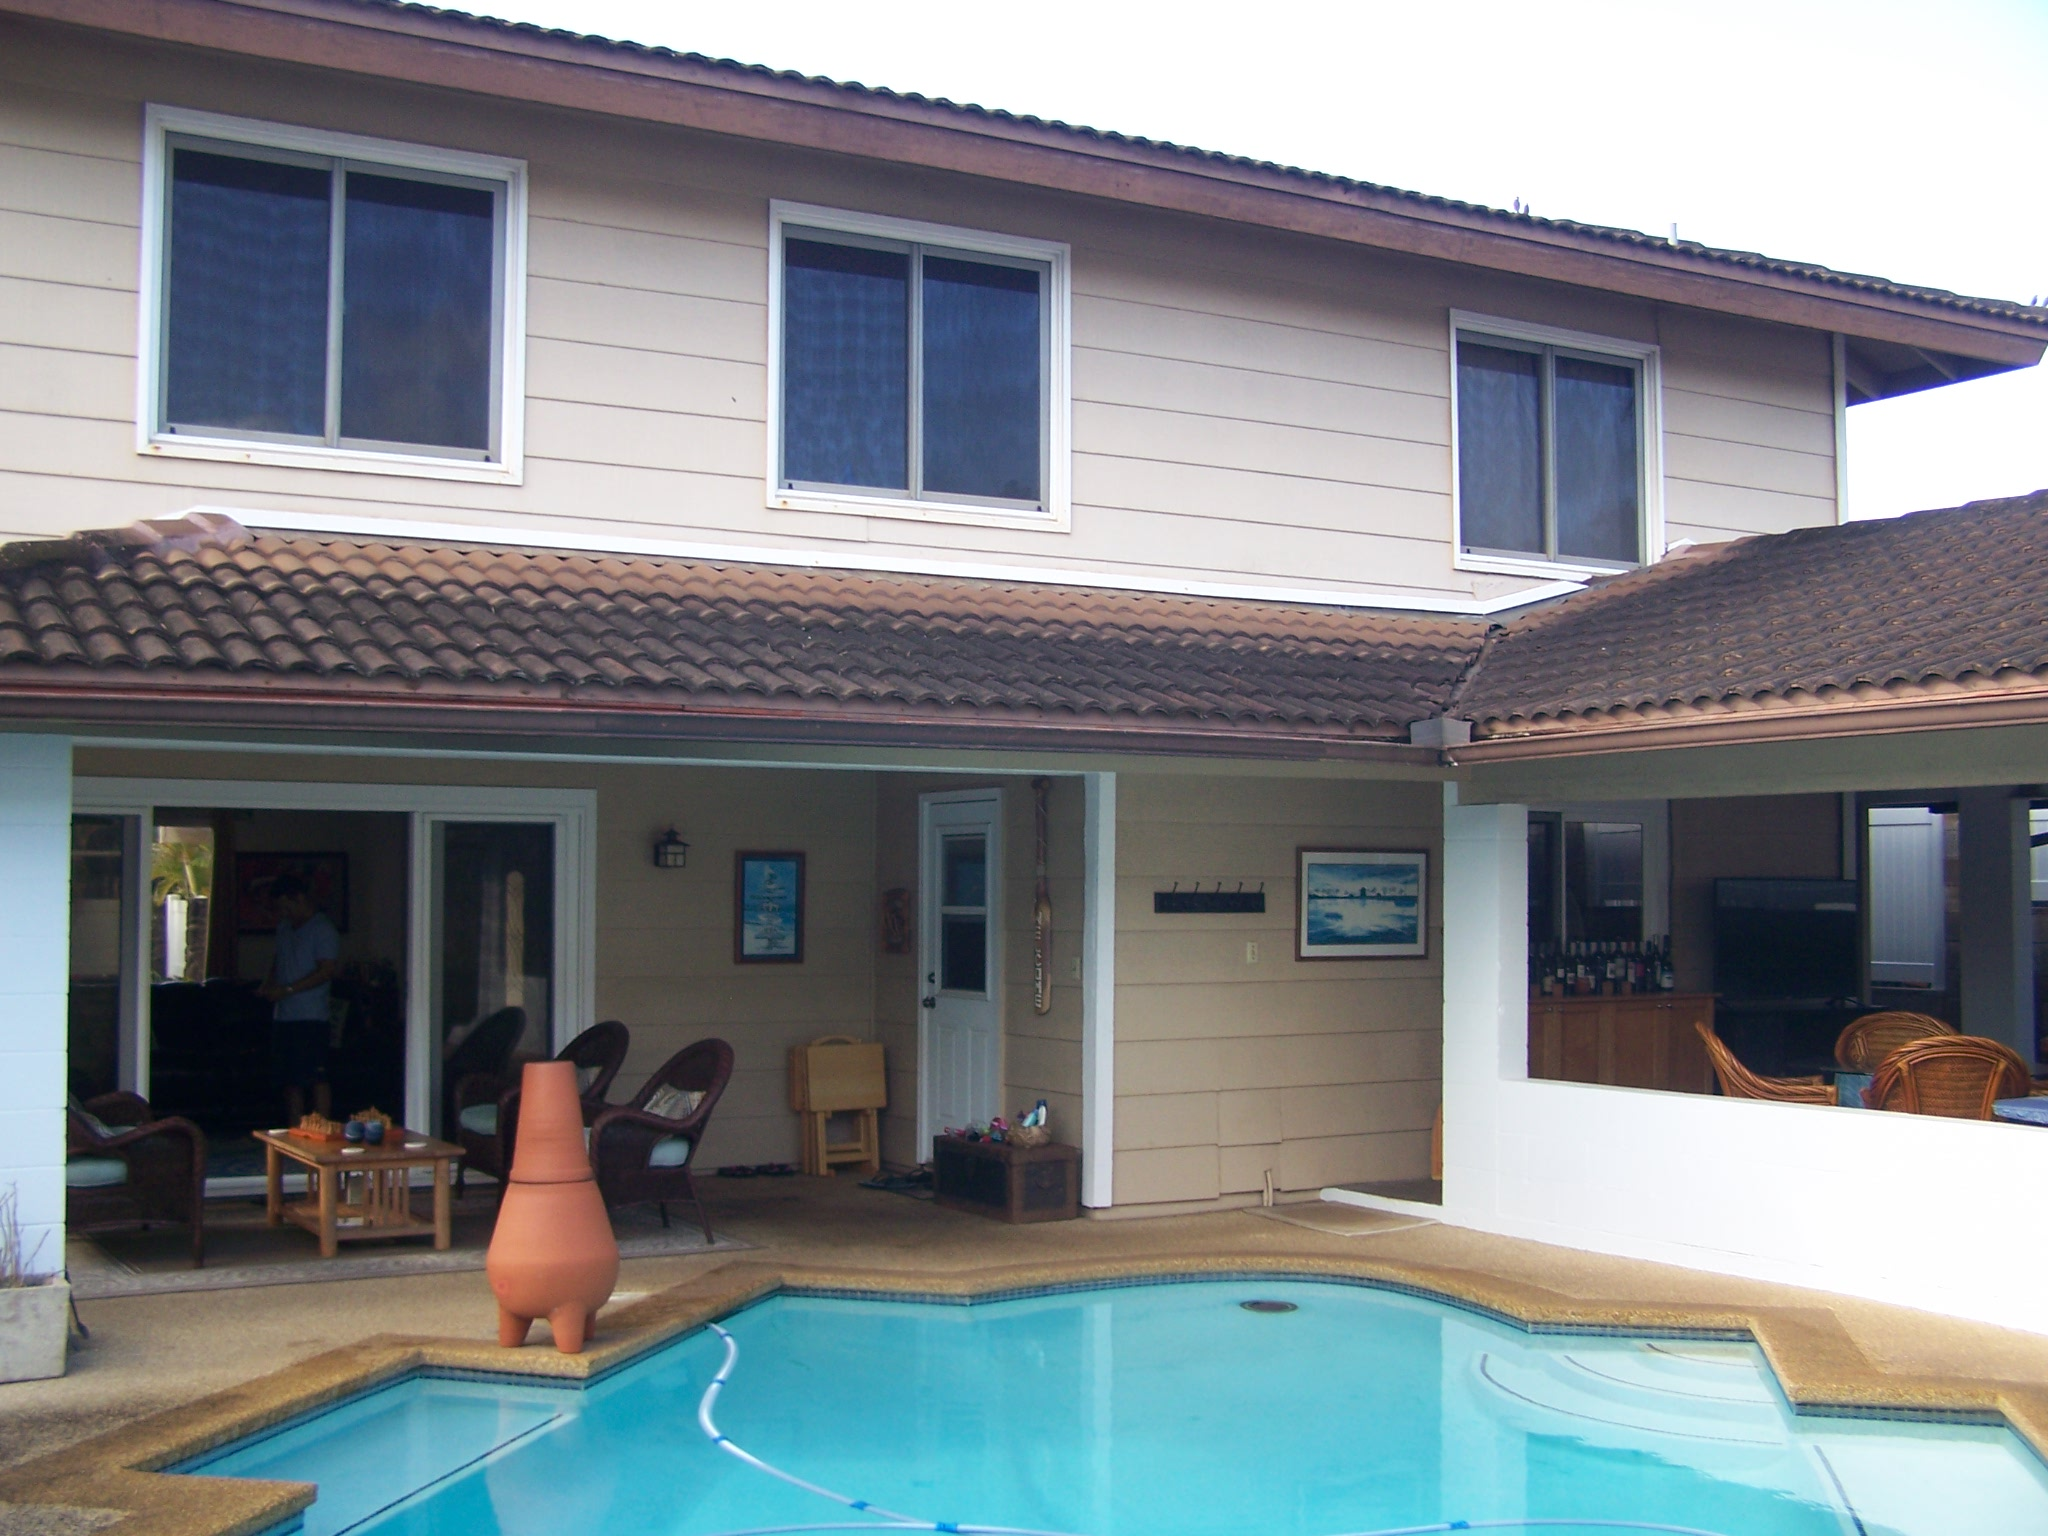 Homes for Sale in Mililani, HI